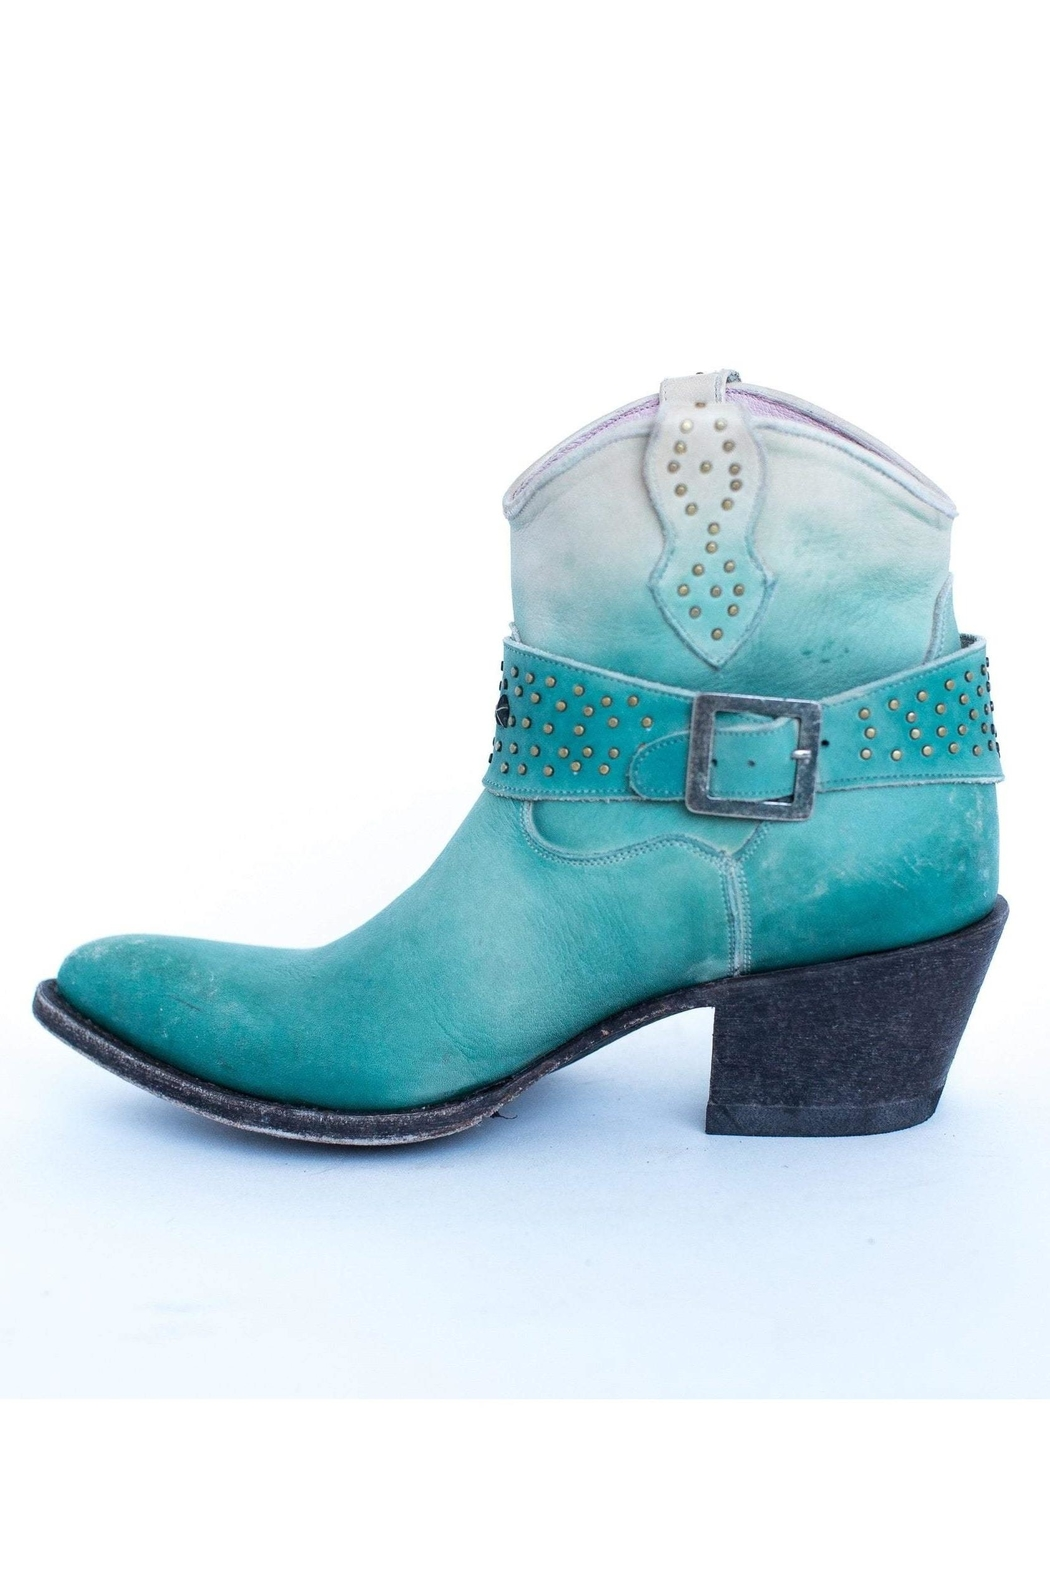 Miss Macie Boots Fine-N-Dandy Turquoise Bootie - Side Cropped Image